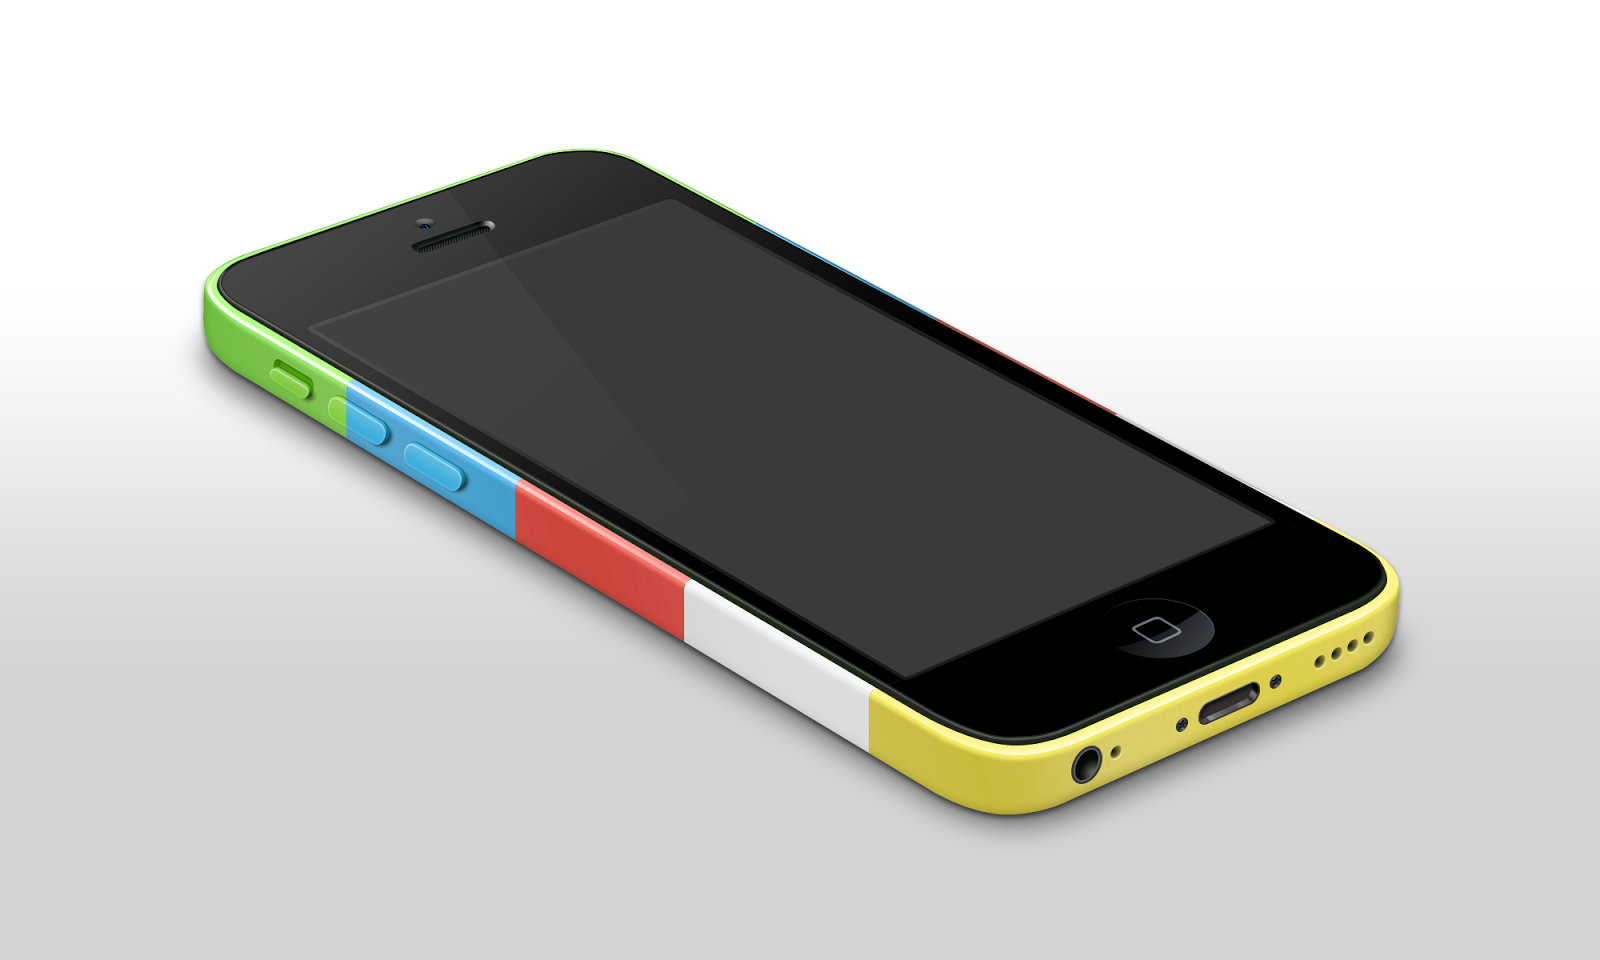 Perspective iPhone 5C Mockup Template